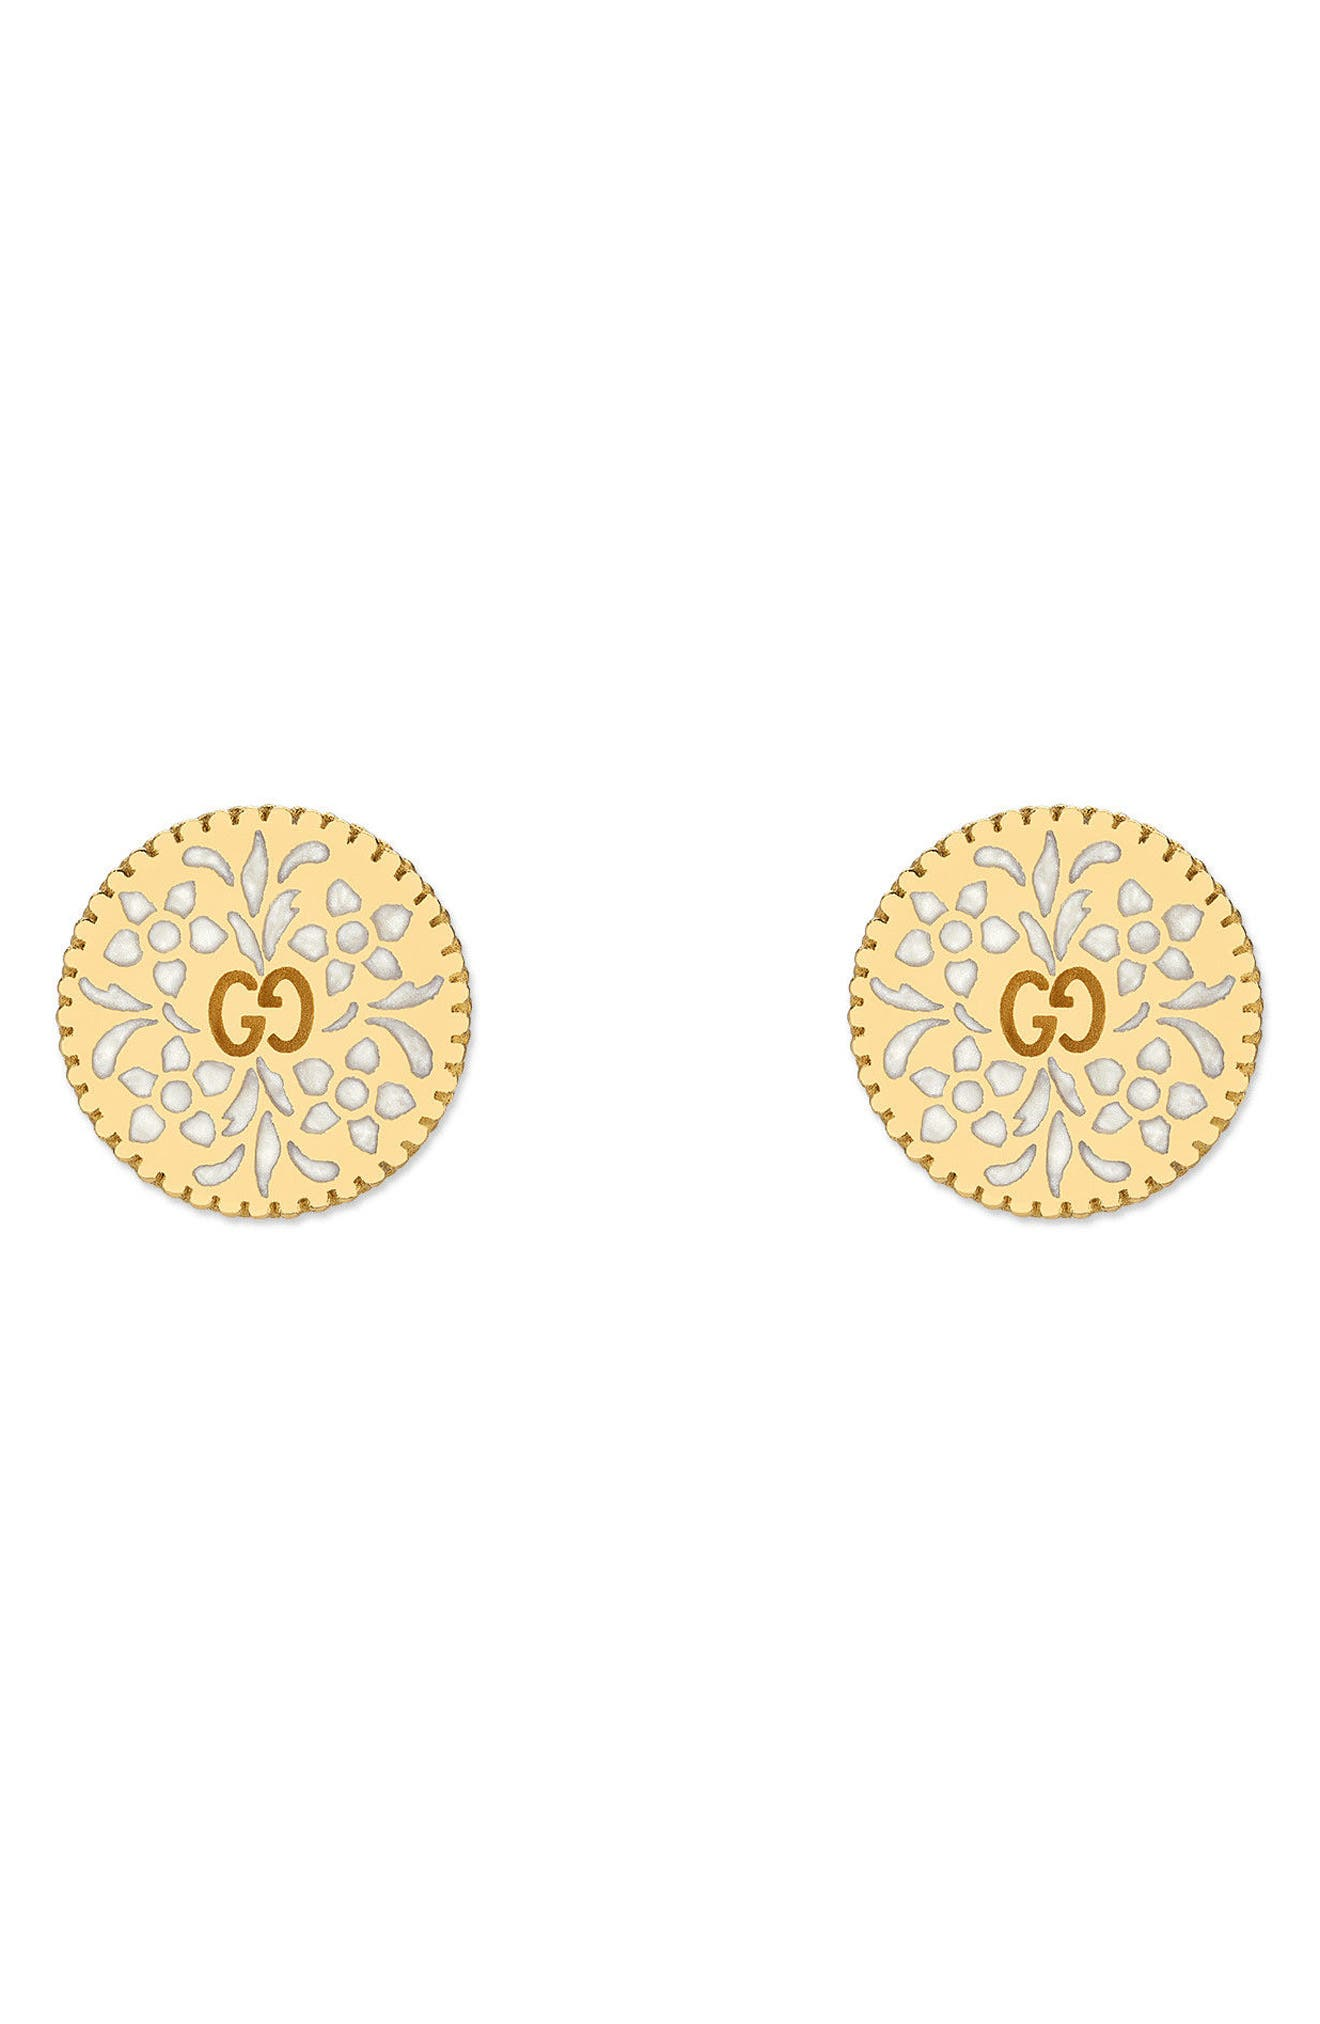 Icon Blooms Stud Earrings,                         Main,                         color, Yellow Gold